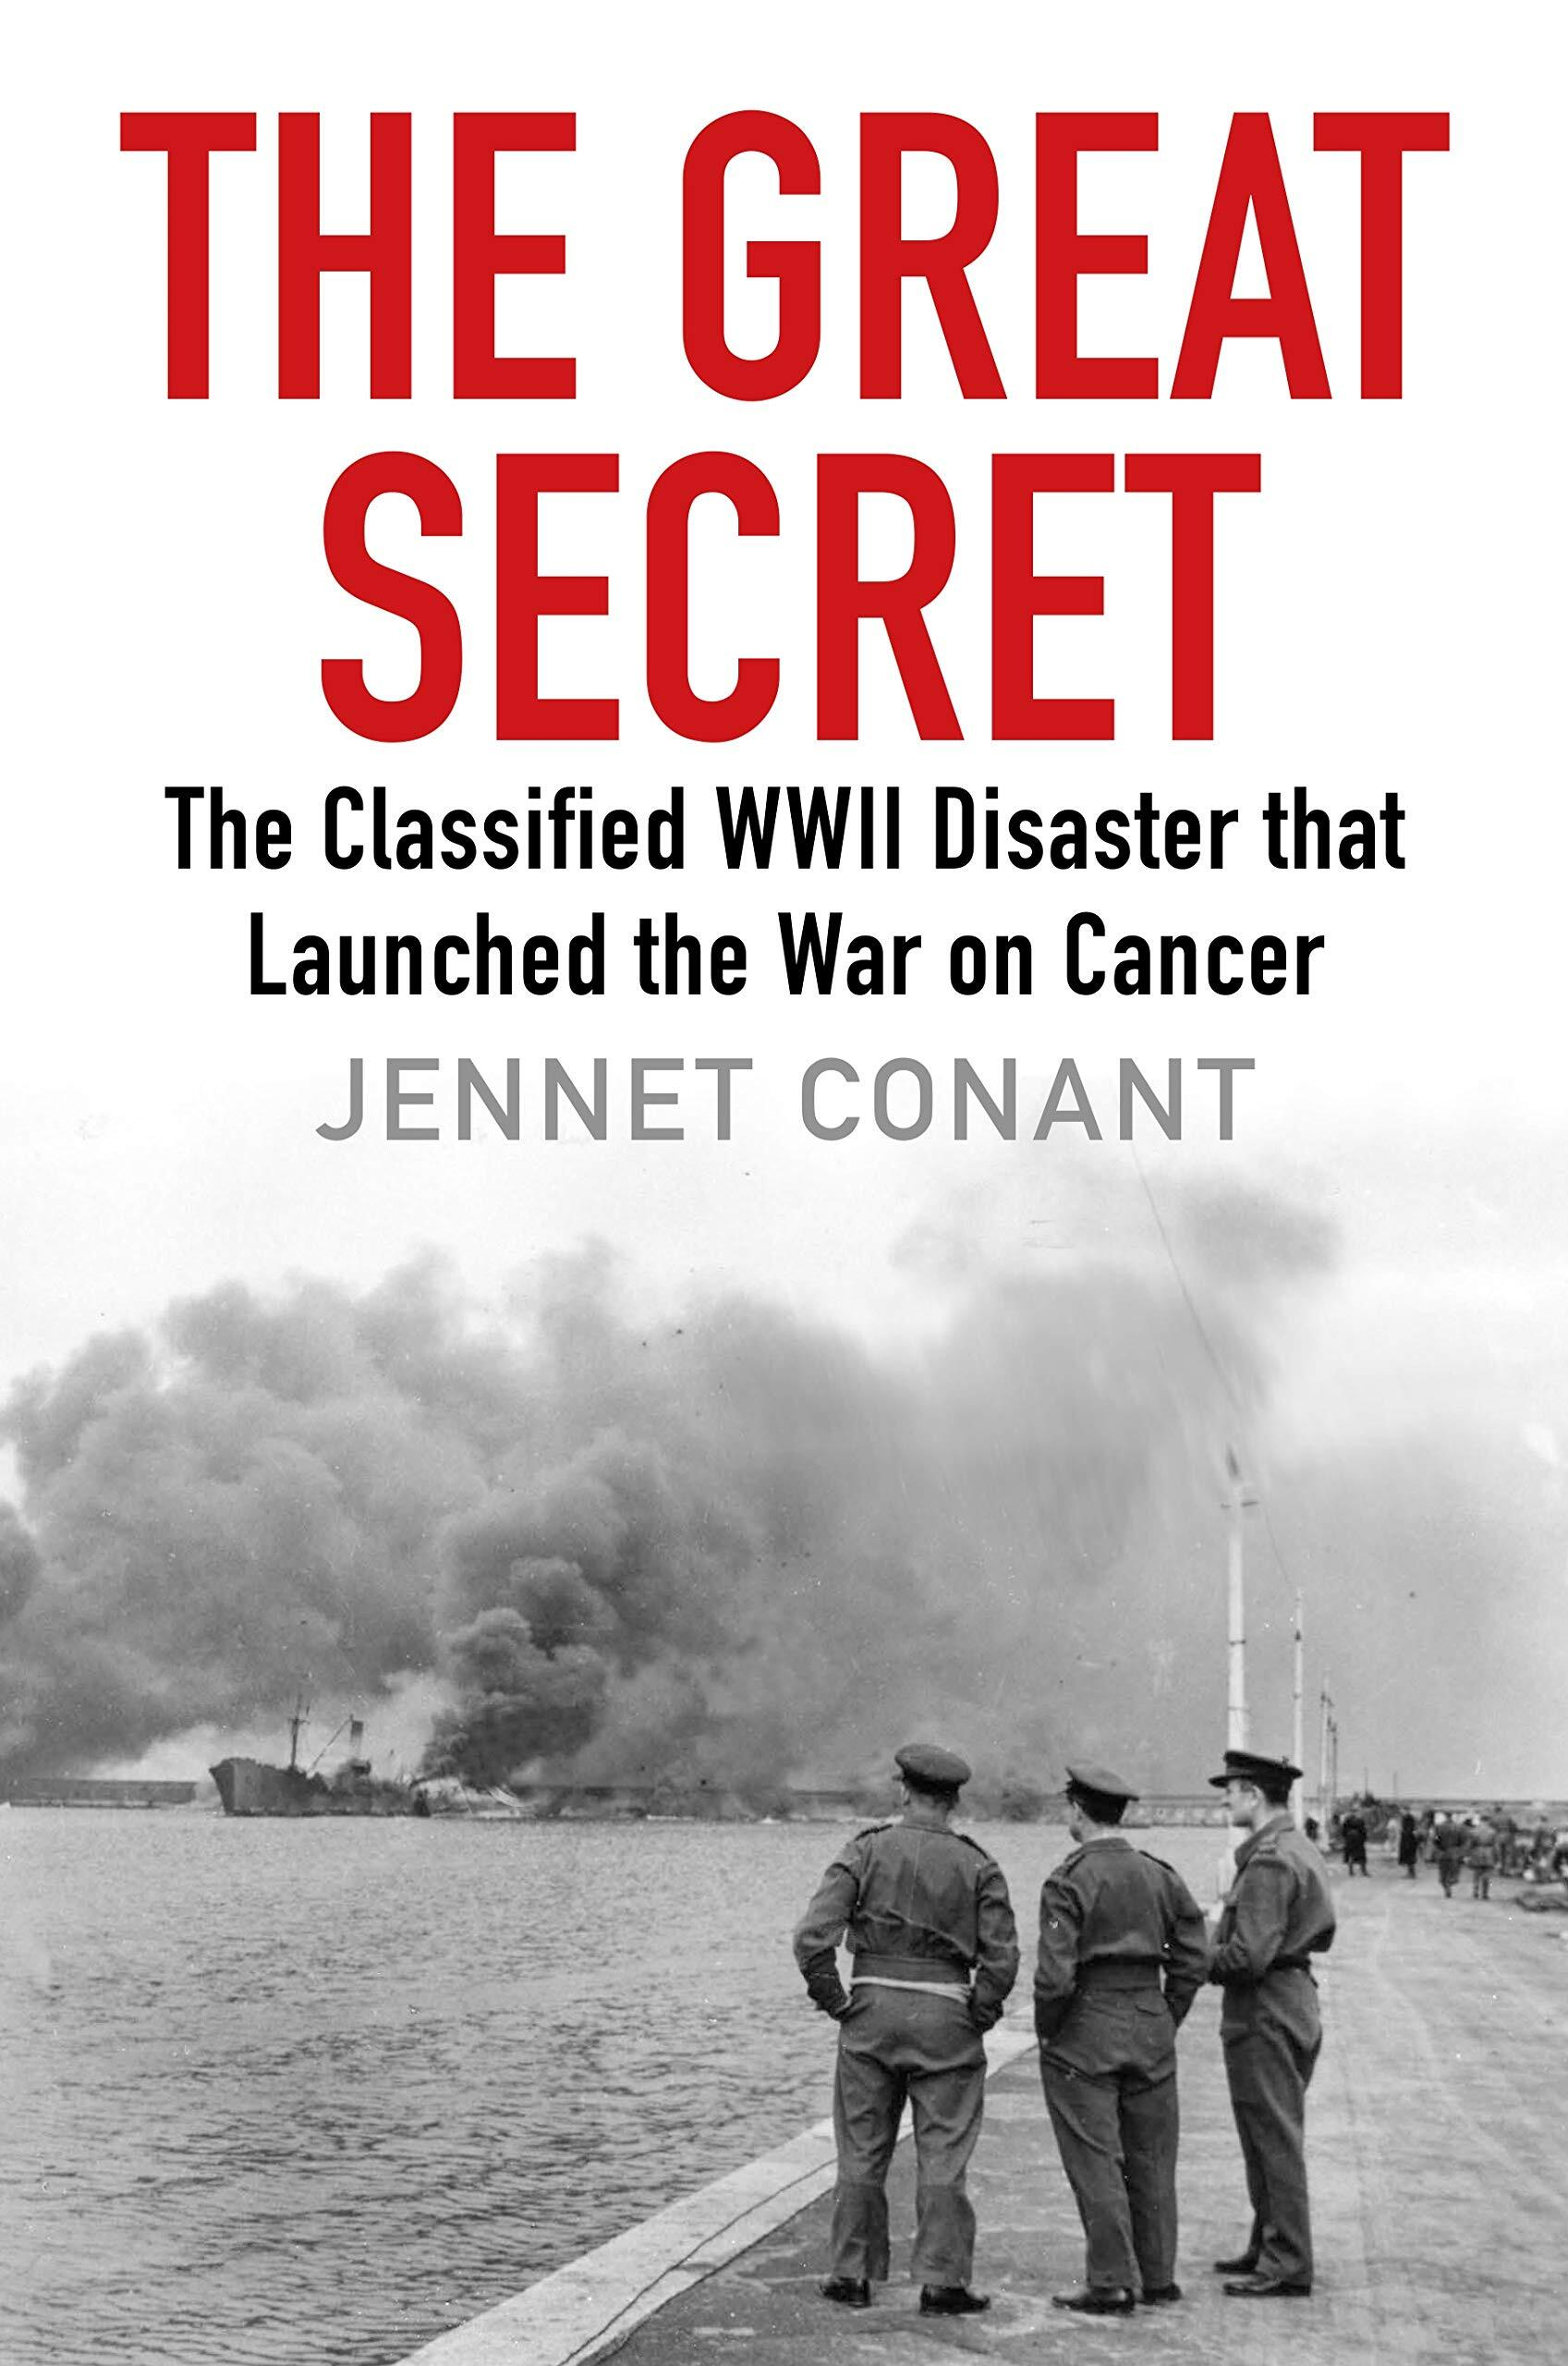 Book - The Great Secret: The Classified World War II Disaster that Launched the War on Cancer